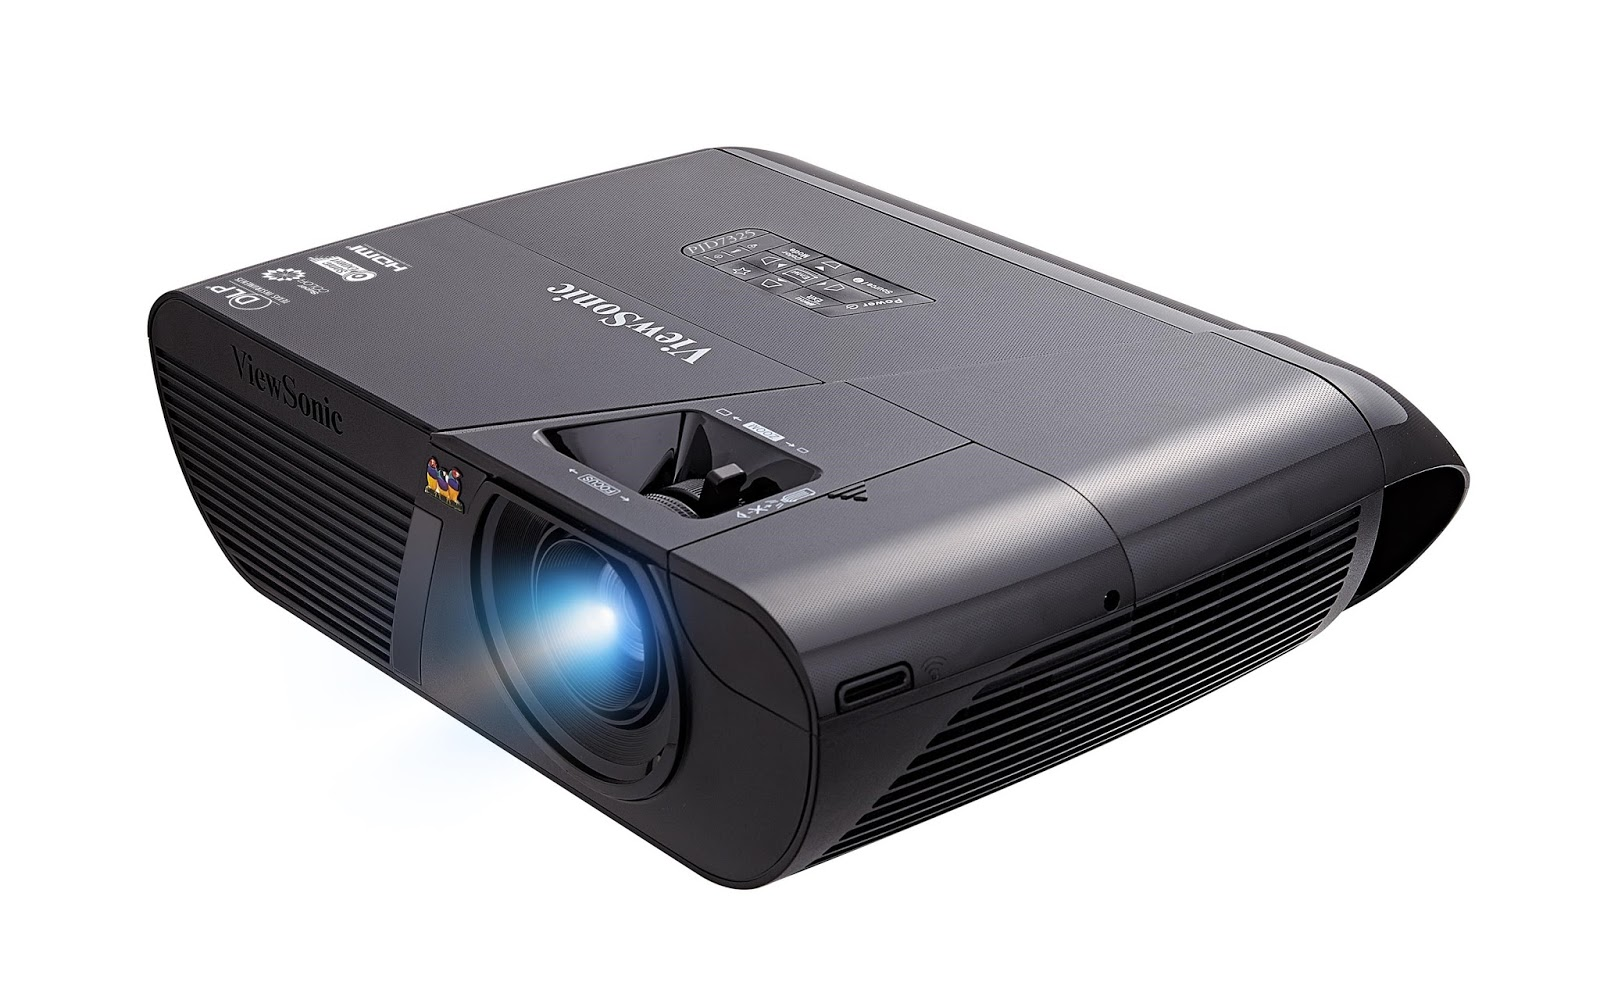 ViewSonic LightStream PJD7325 Digital Projector